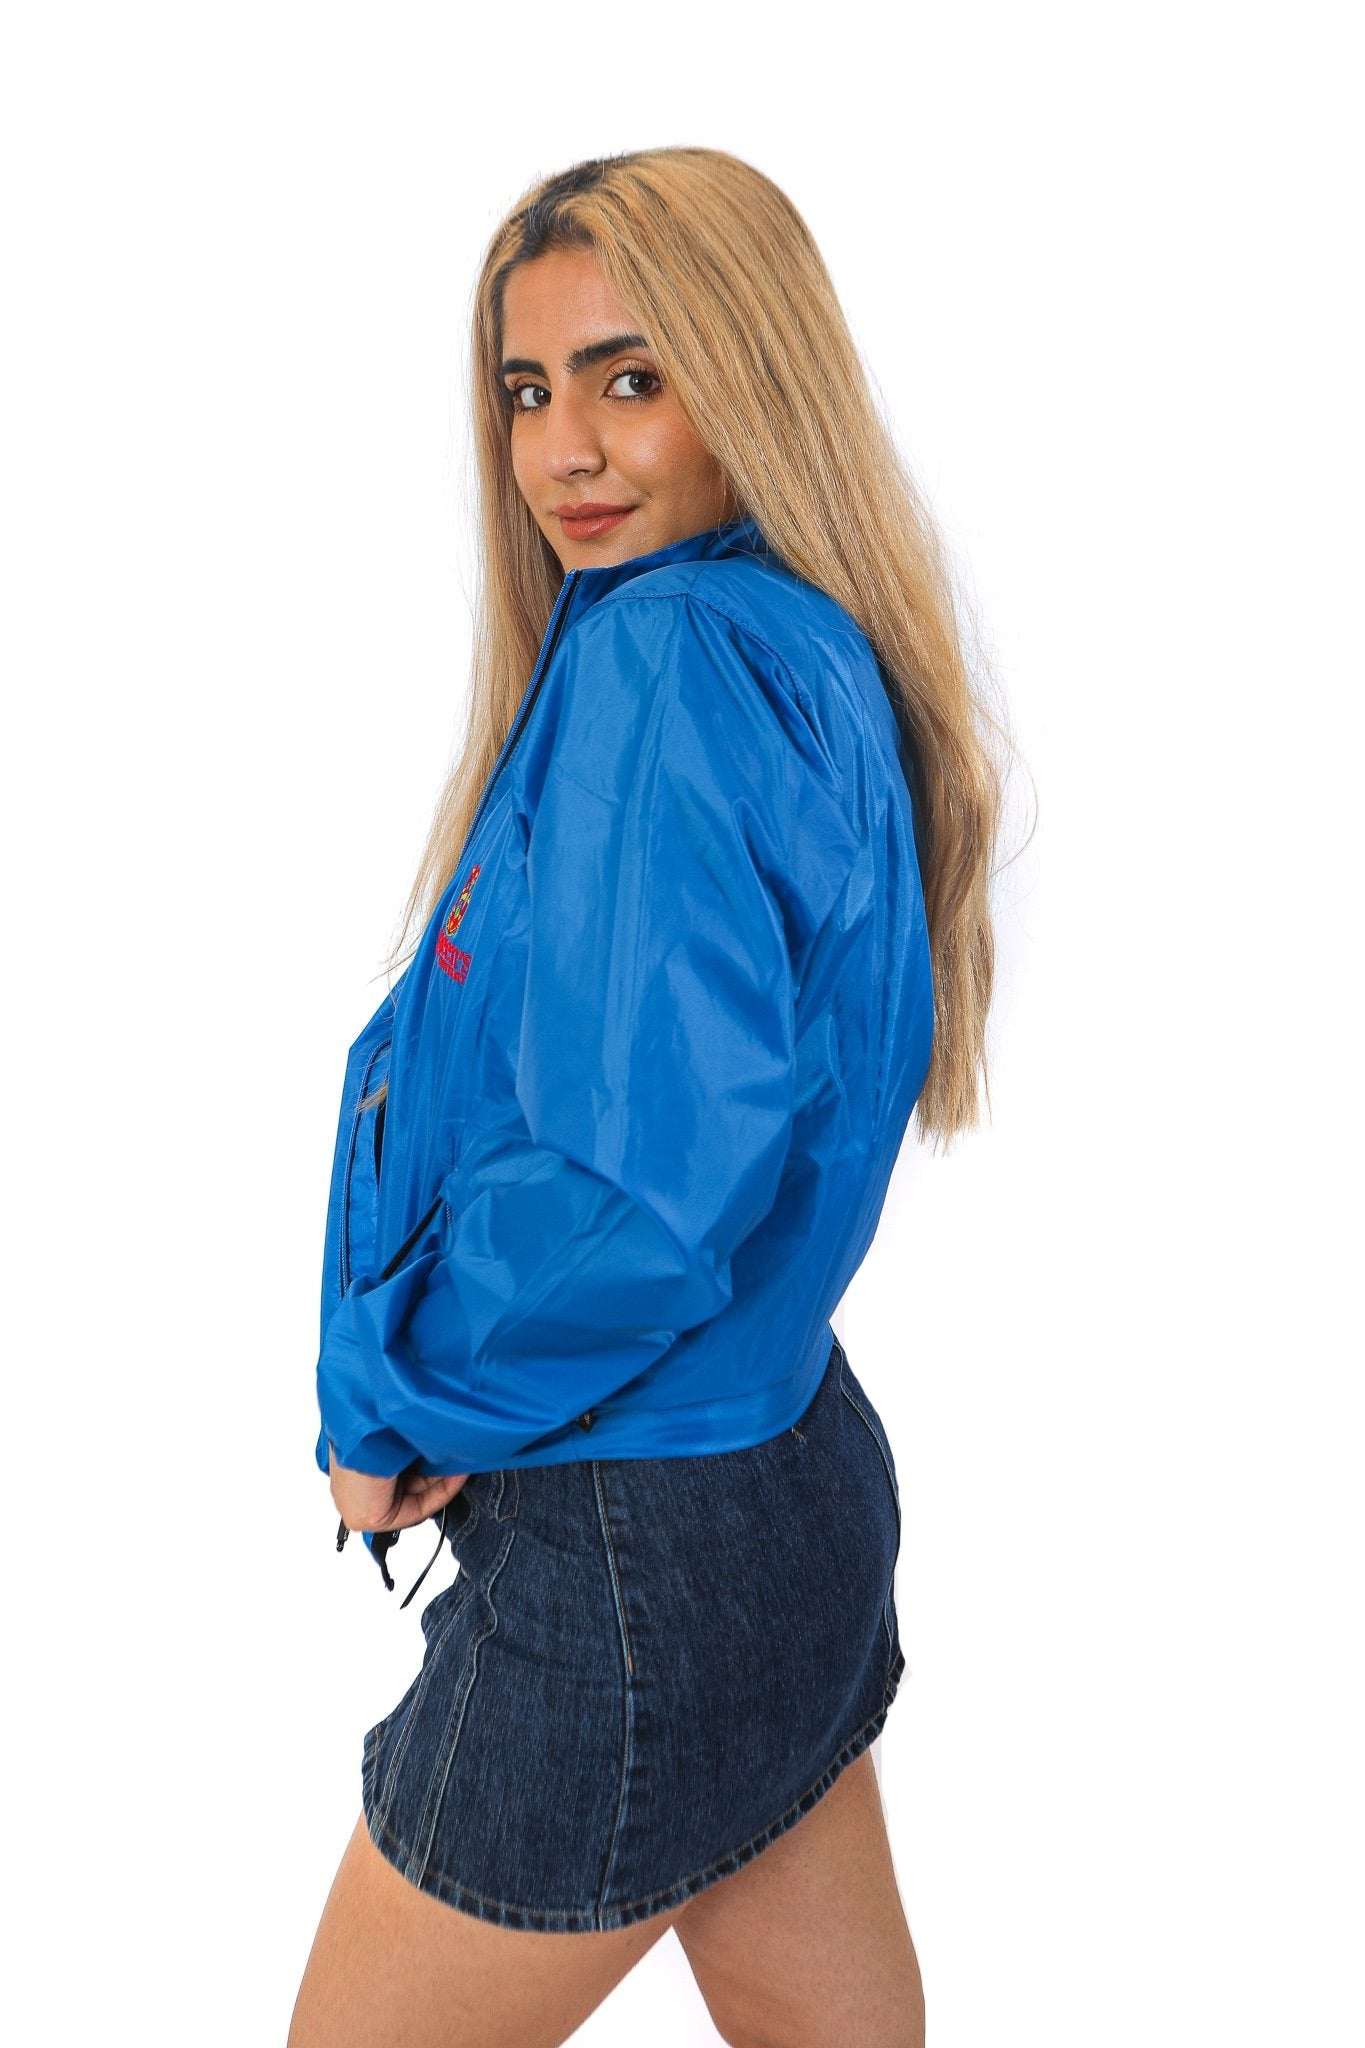 Side view of blue zip up rain jacket with red Queen's crest logo